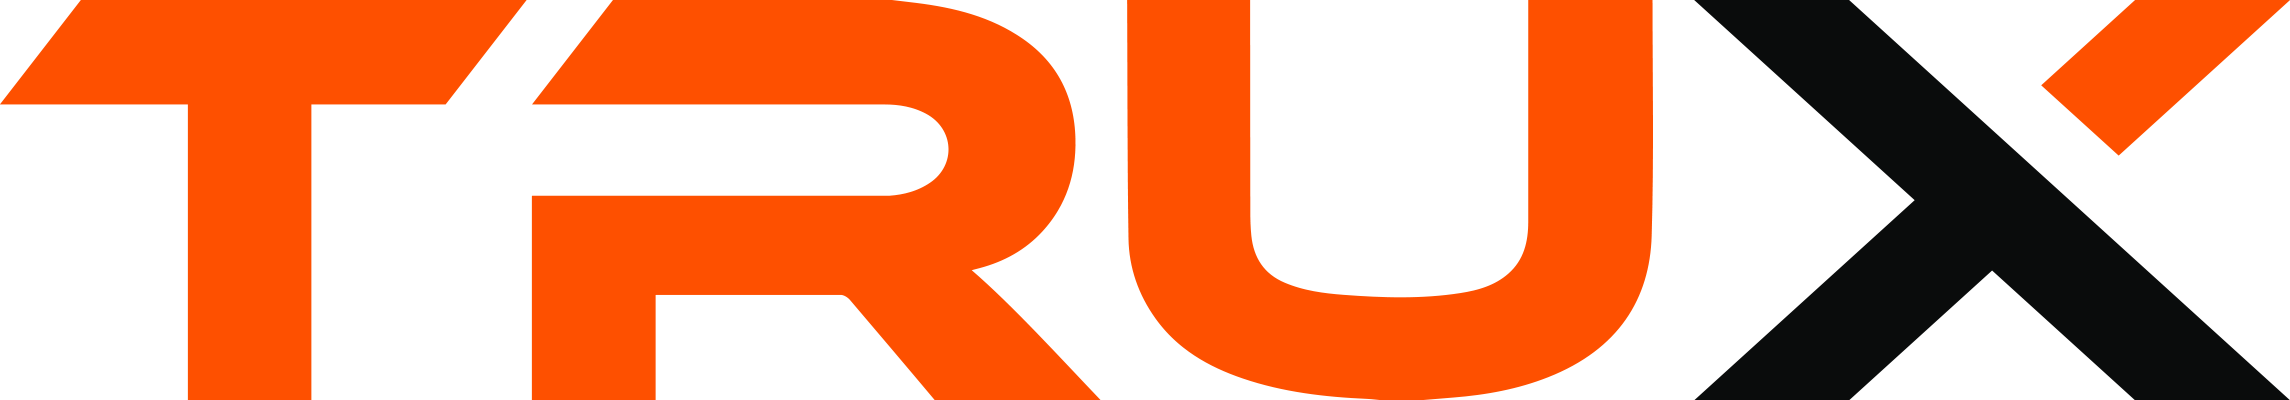 Logo_Orange and Black_Dec 2020